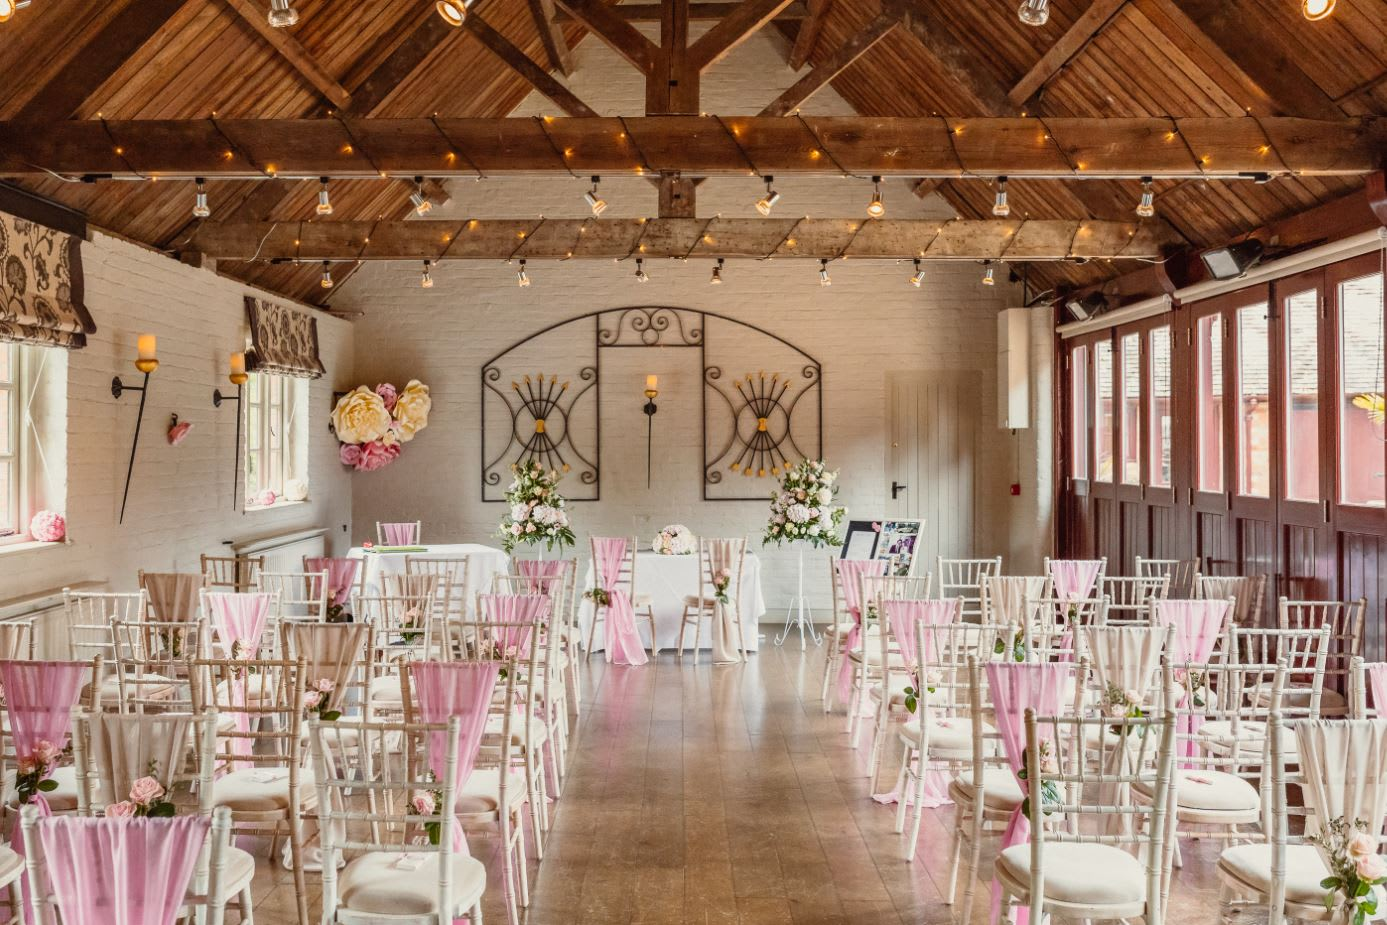 The Five Arrows Hotel Waddesdon Wedding Photographer   Potters Instinct Photography. ltfe8p